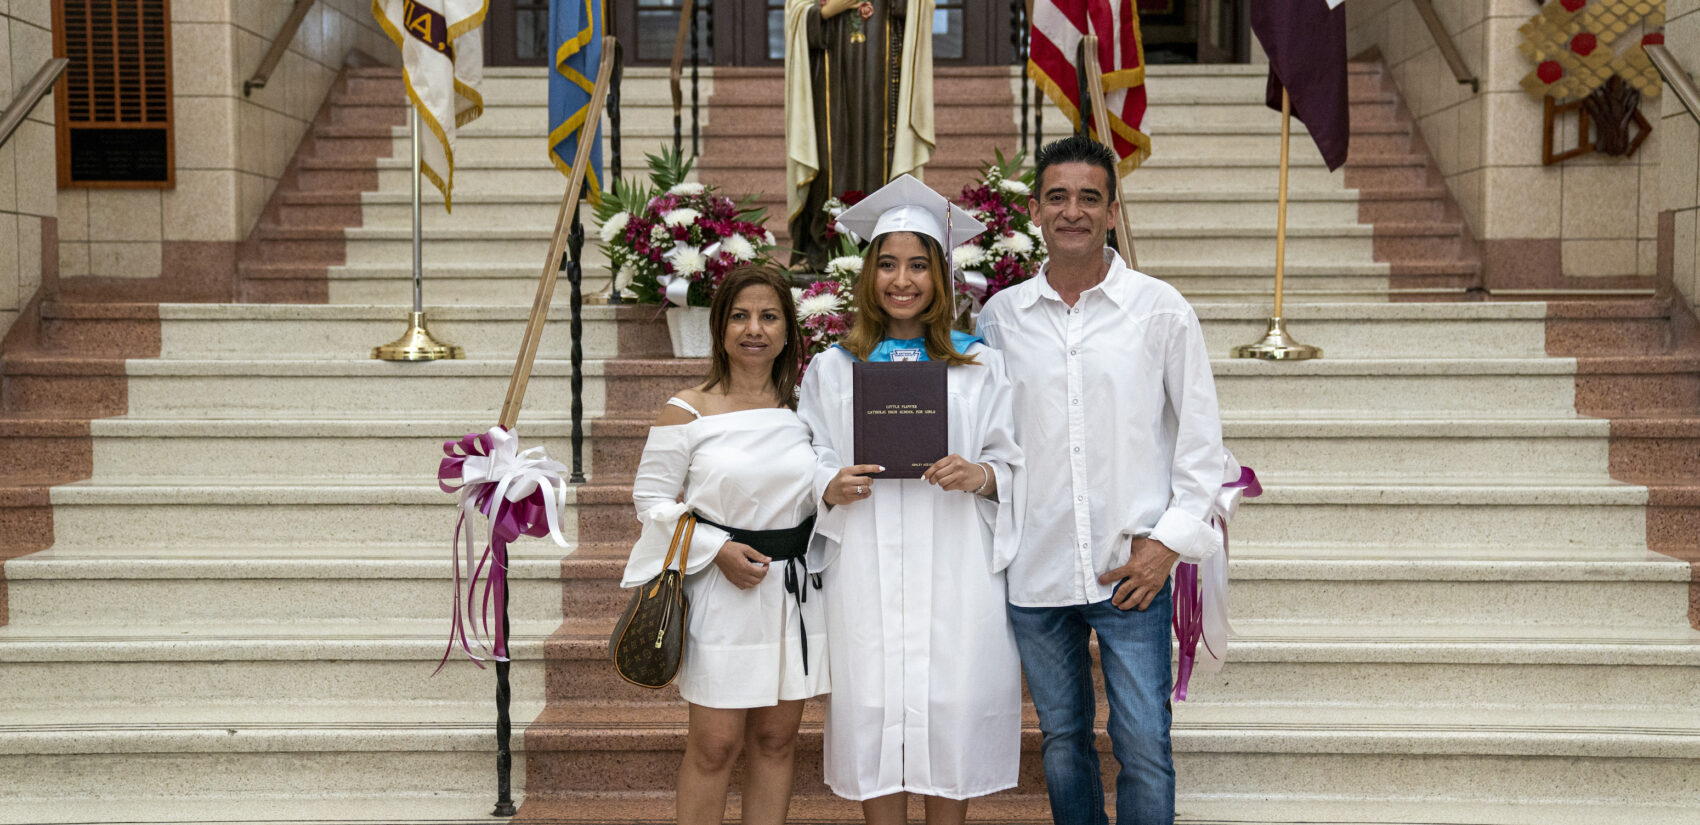 Ashley Acevedo with her parents Elena and Johnny on graduation day inside Little Flower Catholic School for Girls. (Jessica Kourkounis for Keystone Crossroads)